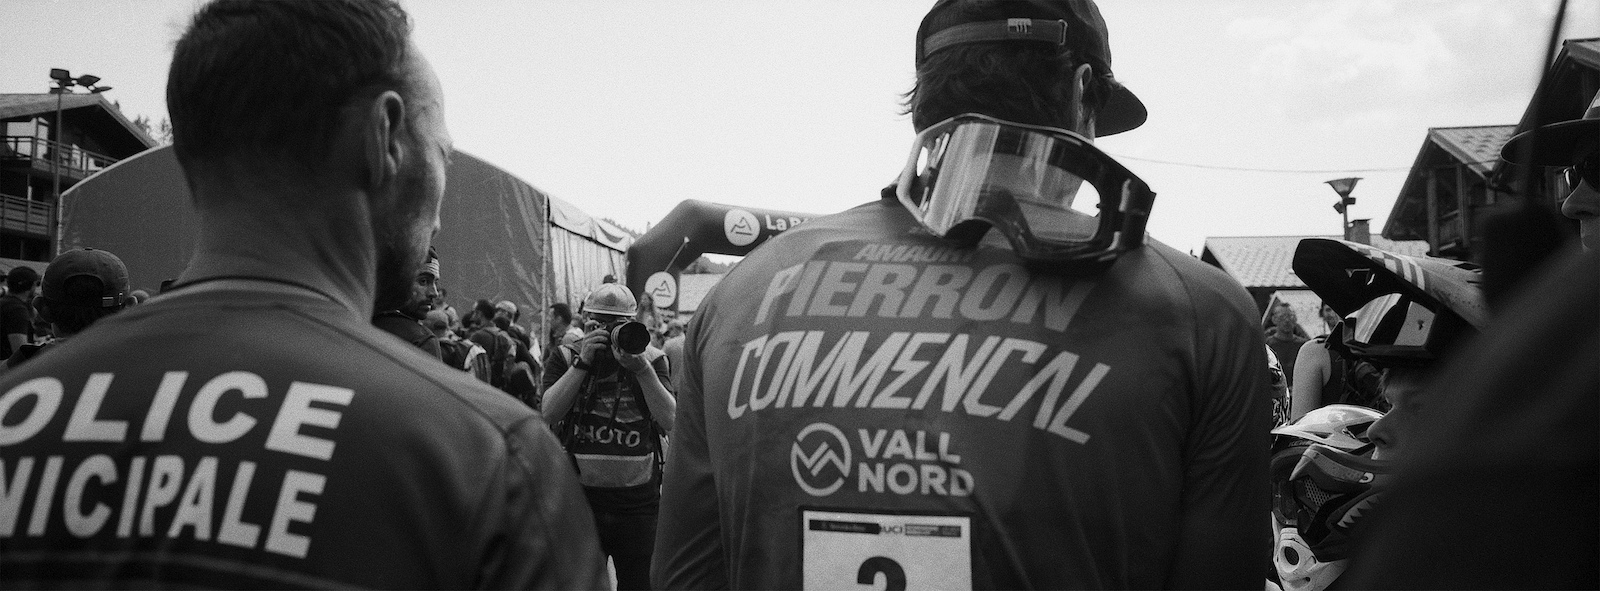 A police escort for Amaury Pierron after his huge win on French soil. The crowds were denser than a Beatles concert.